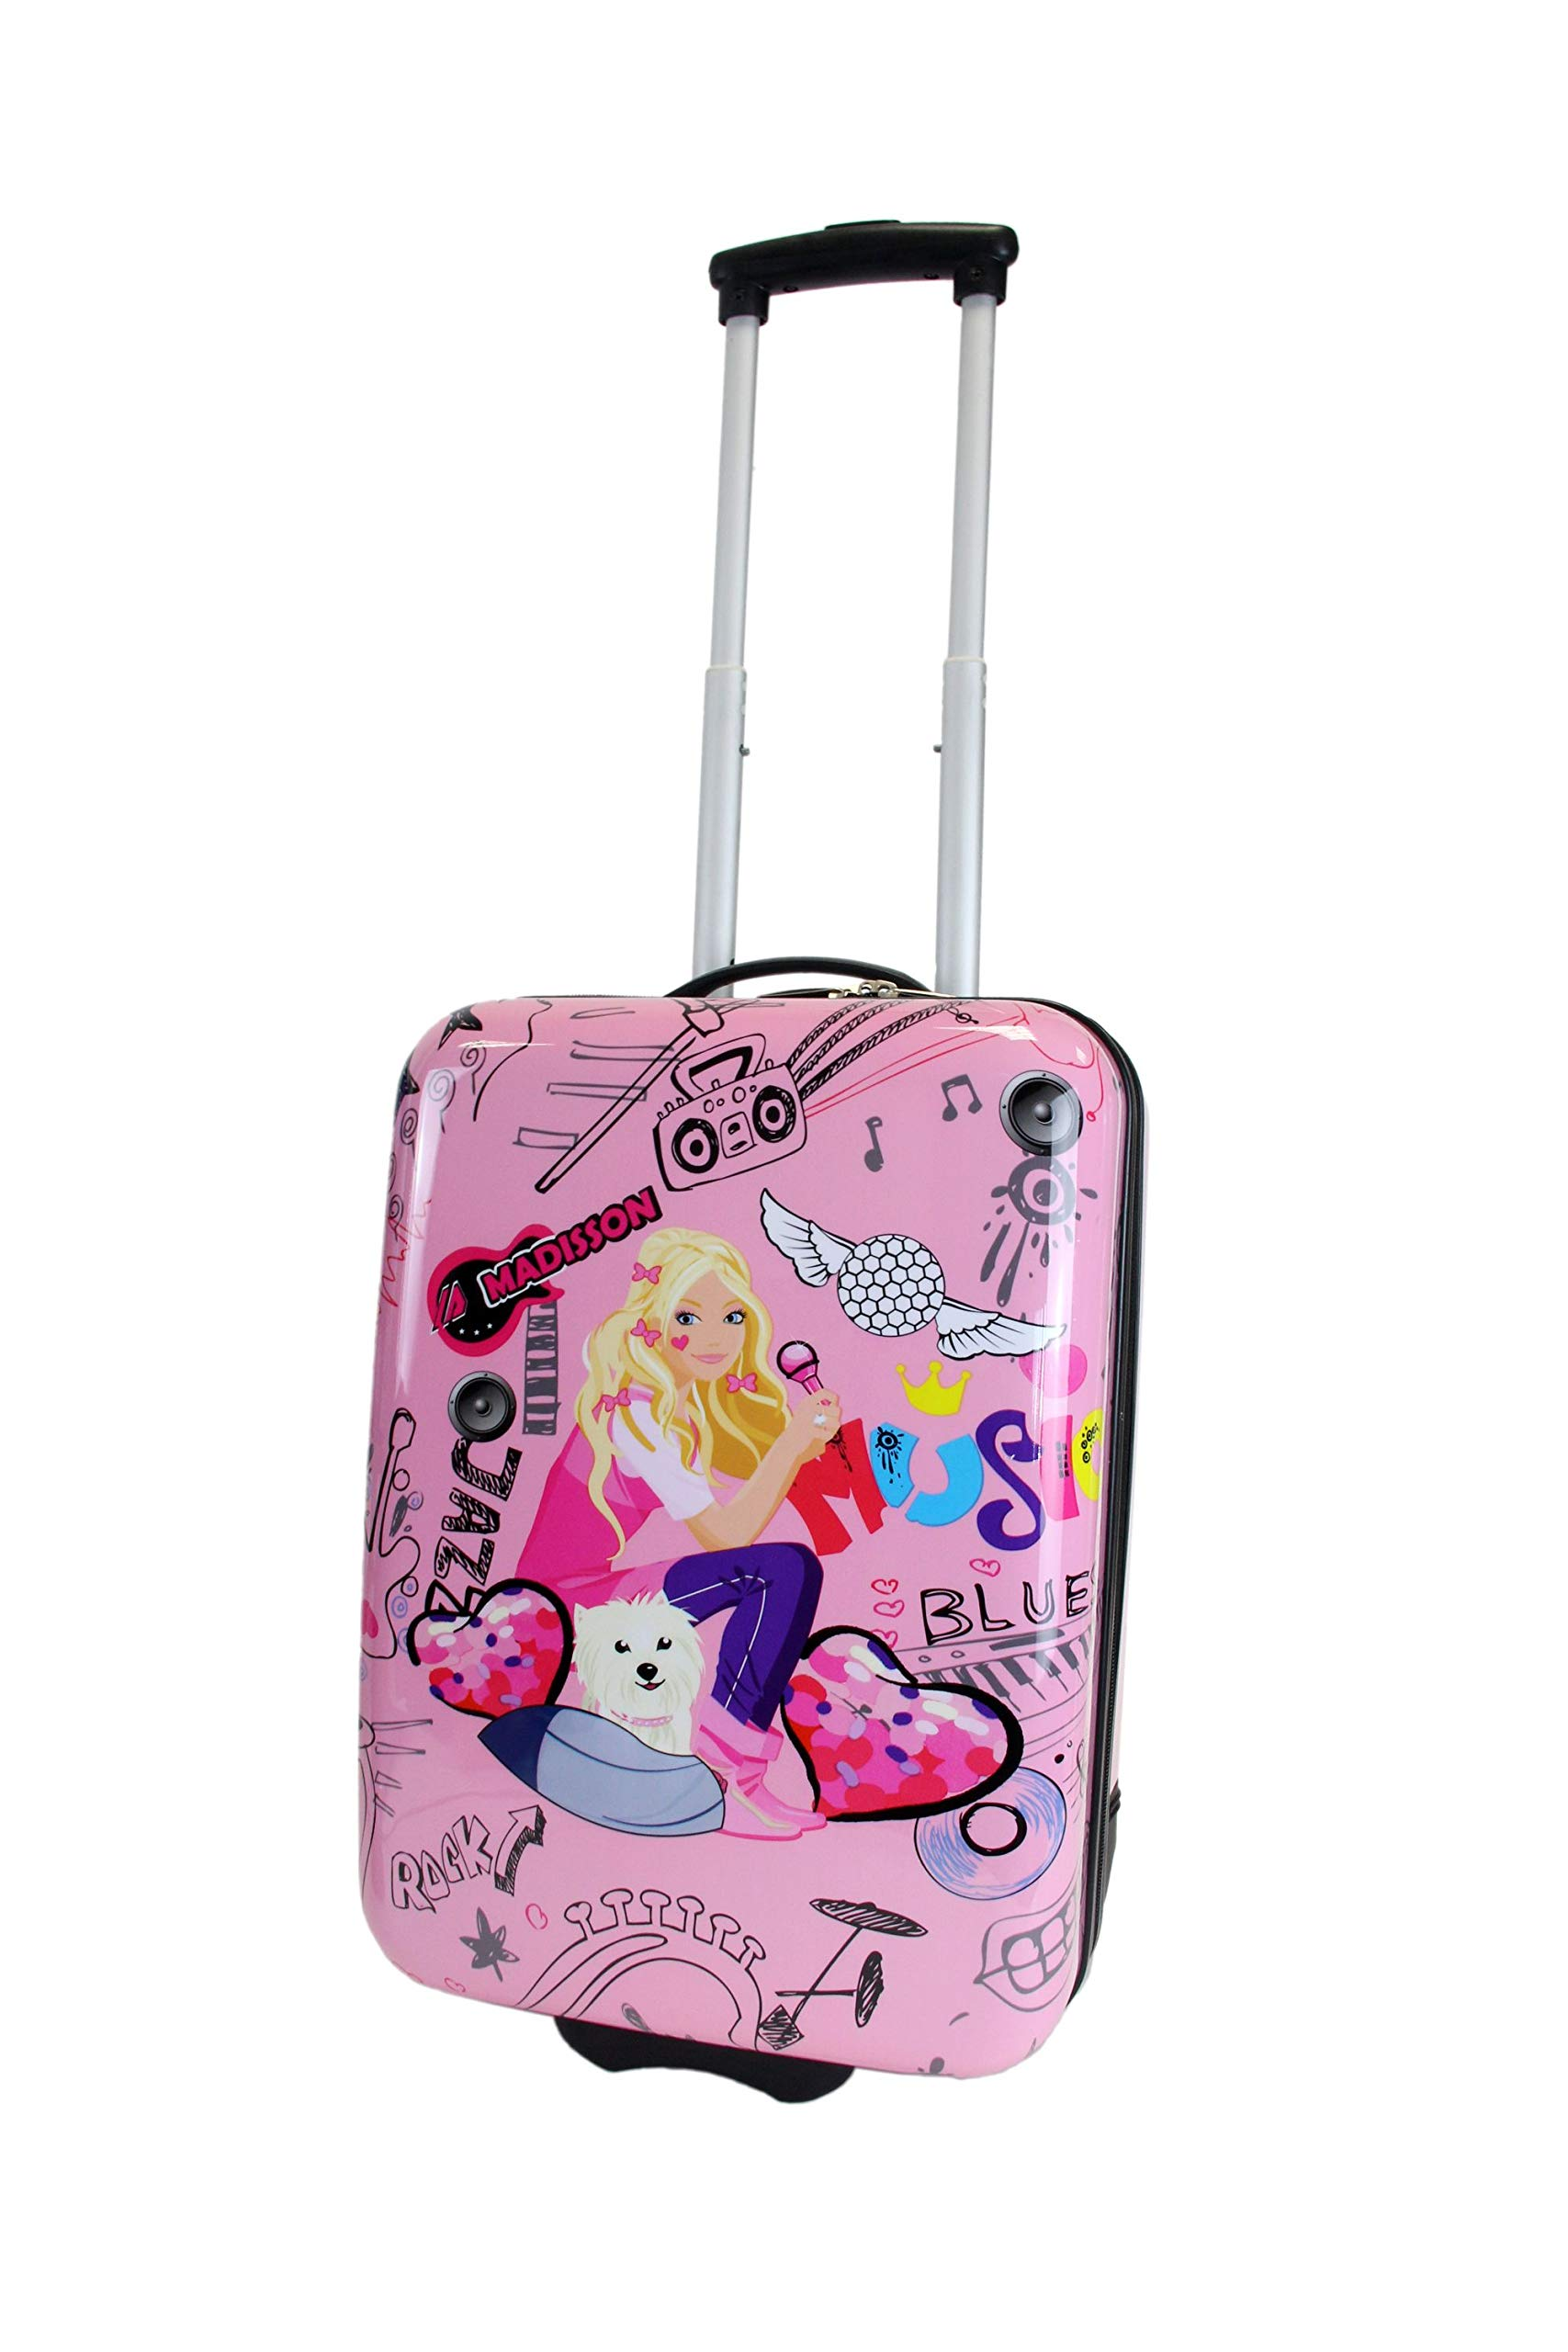 Frentree-Cool-Girls-Mdchen-Kinder-Trolley-Hartschalen-Handgepck-Reisekoffer